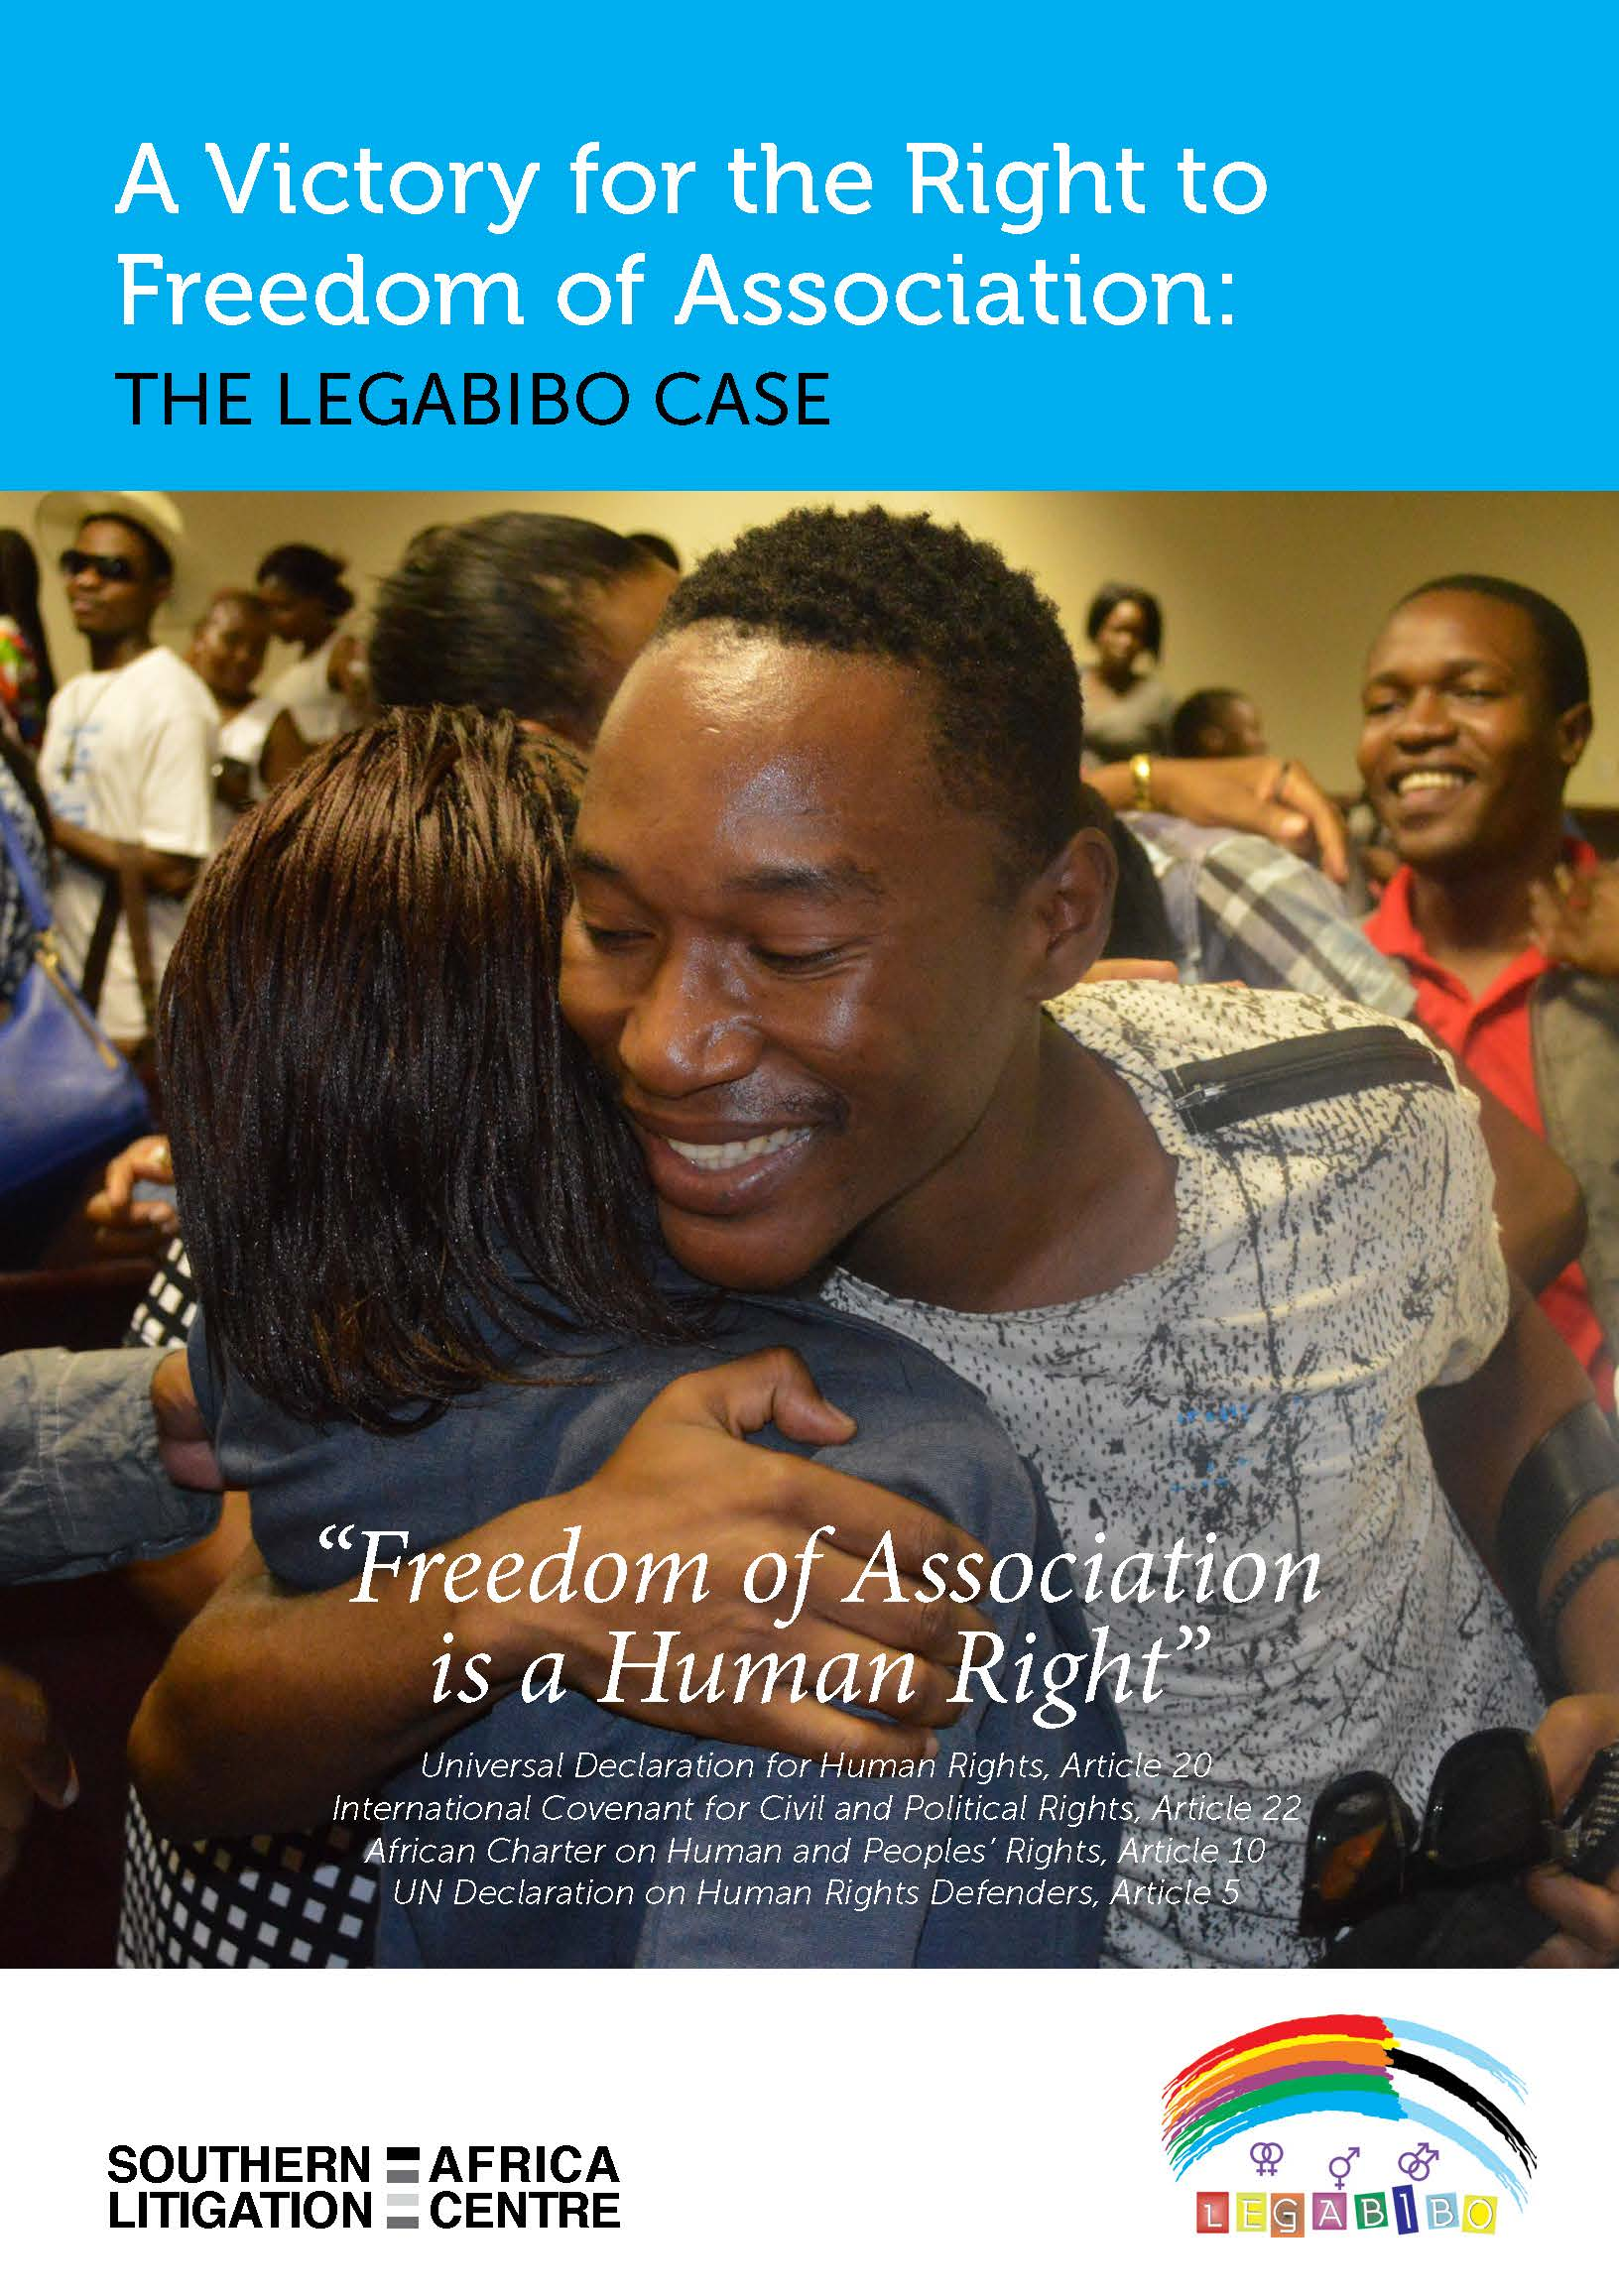 The LEGABIBO case: A victory for the right to freedom of association